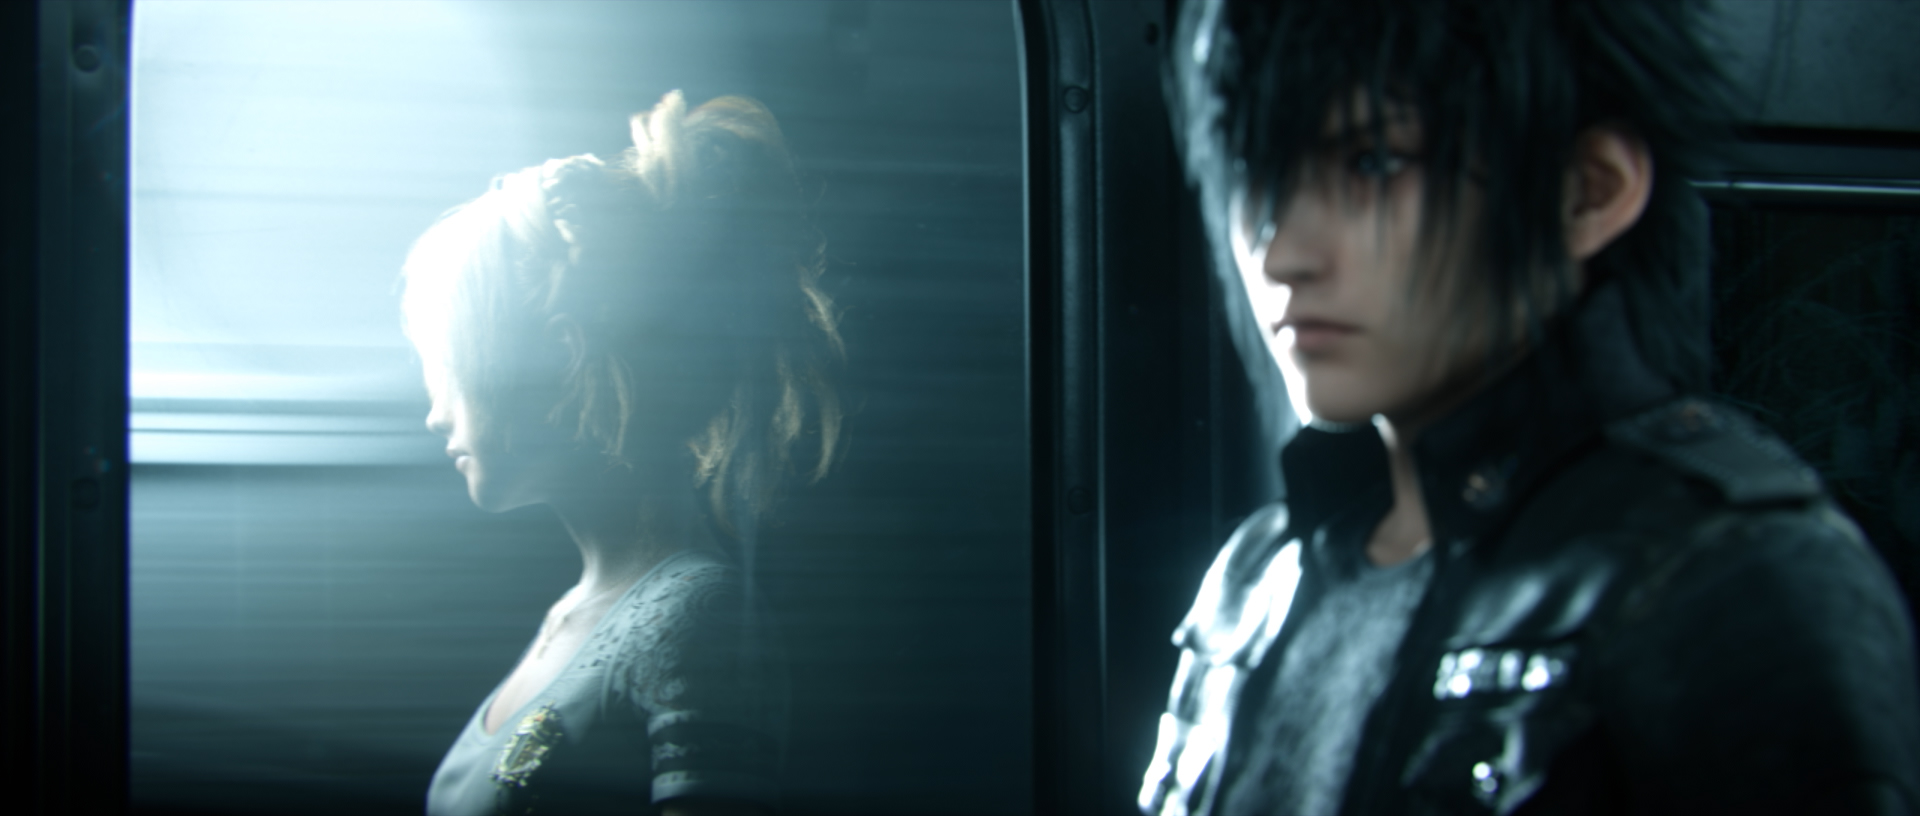 Final Fantasy 15 Guide Tips And Advice For Your Royal Road Trip VG247